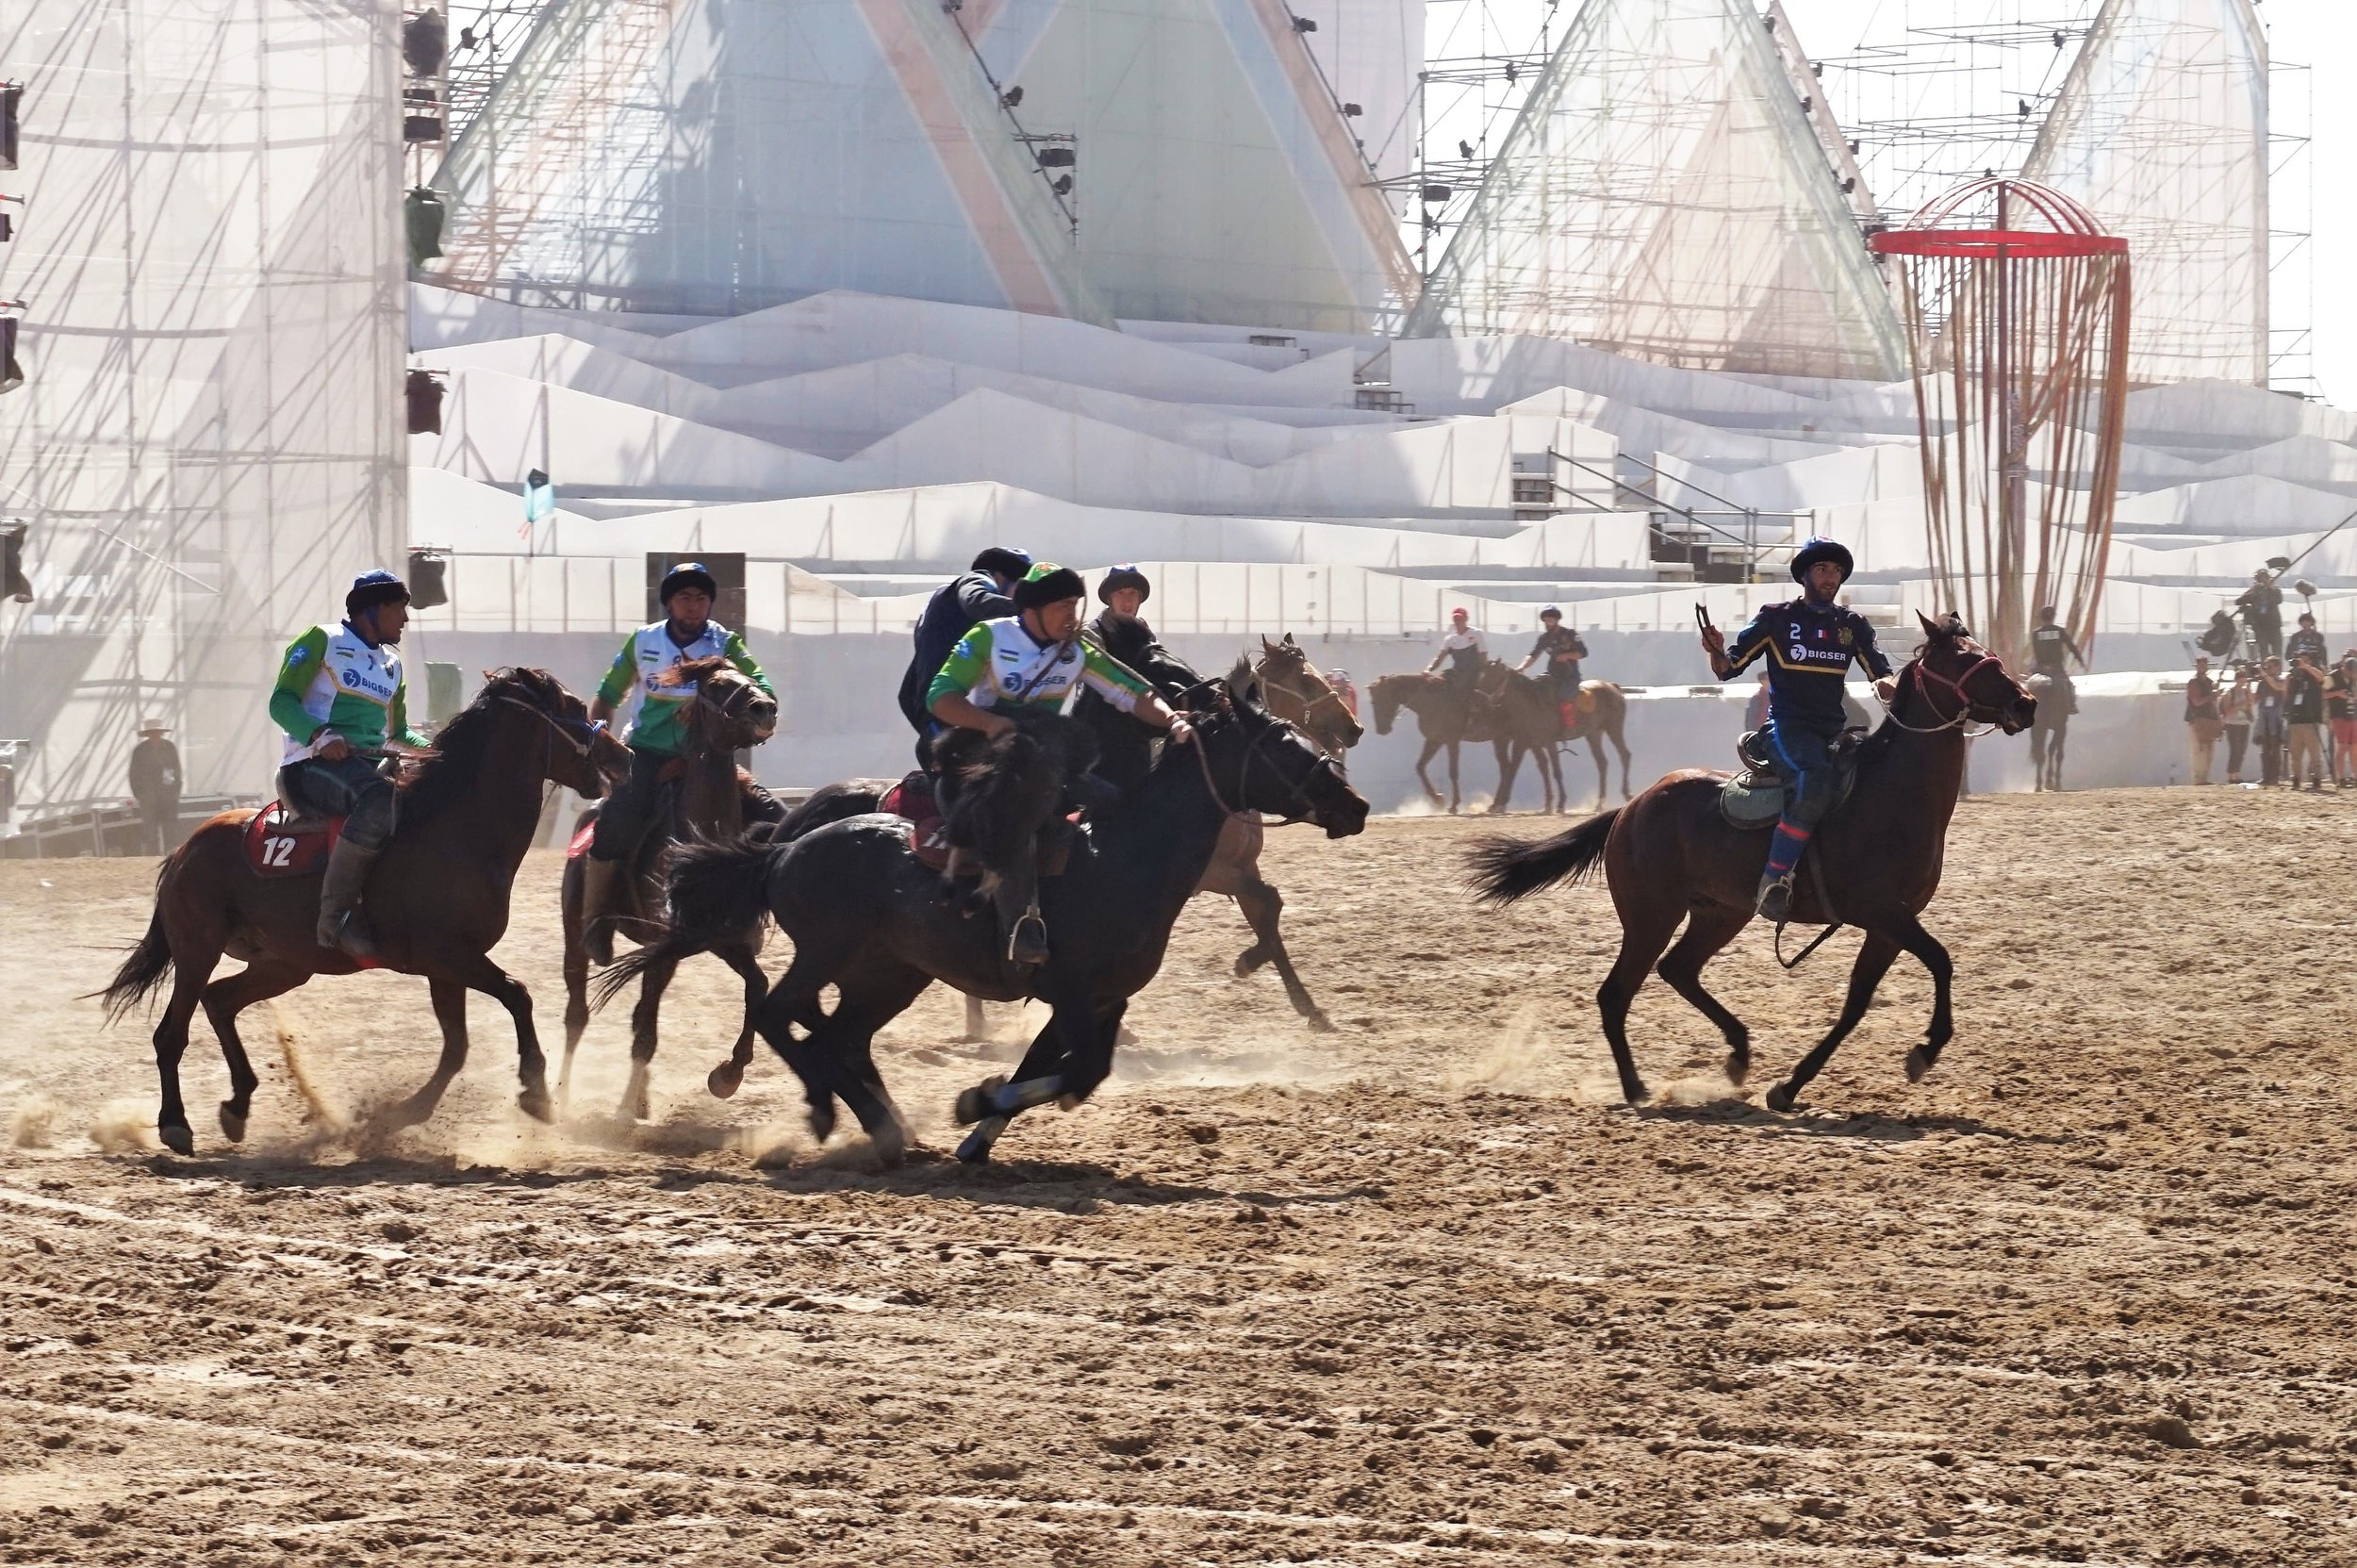 Kok-Boru is a very strange thing to watch from a western perspective, but it is a very traditional and popular sport in this region of the world and definitely one of the most interesting things to see in Kyrgyzstan!